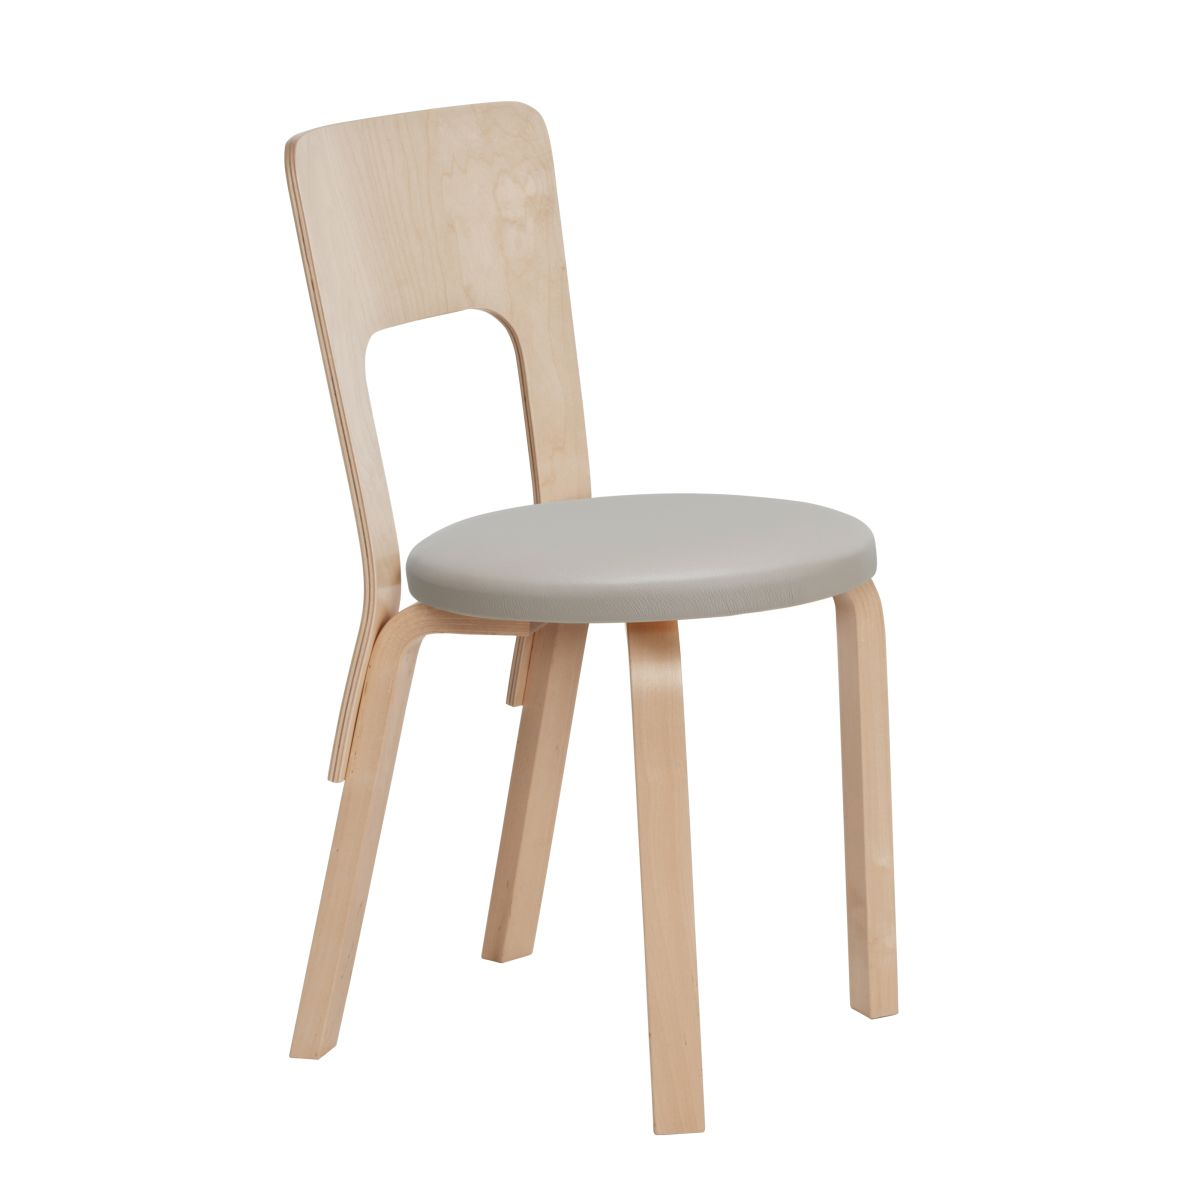 Chair-66-legs-birch_top-leather-upholstery-padding-2912690